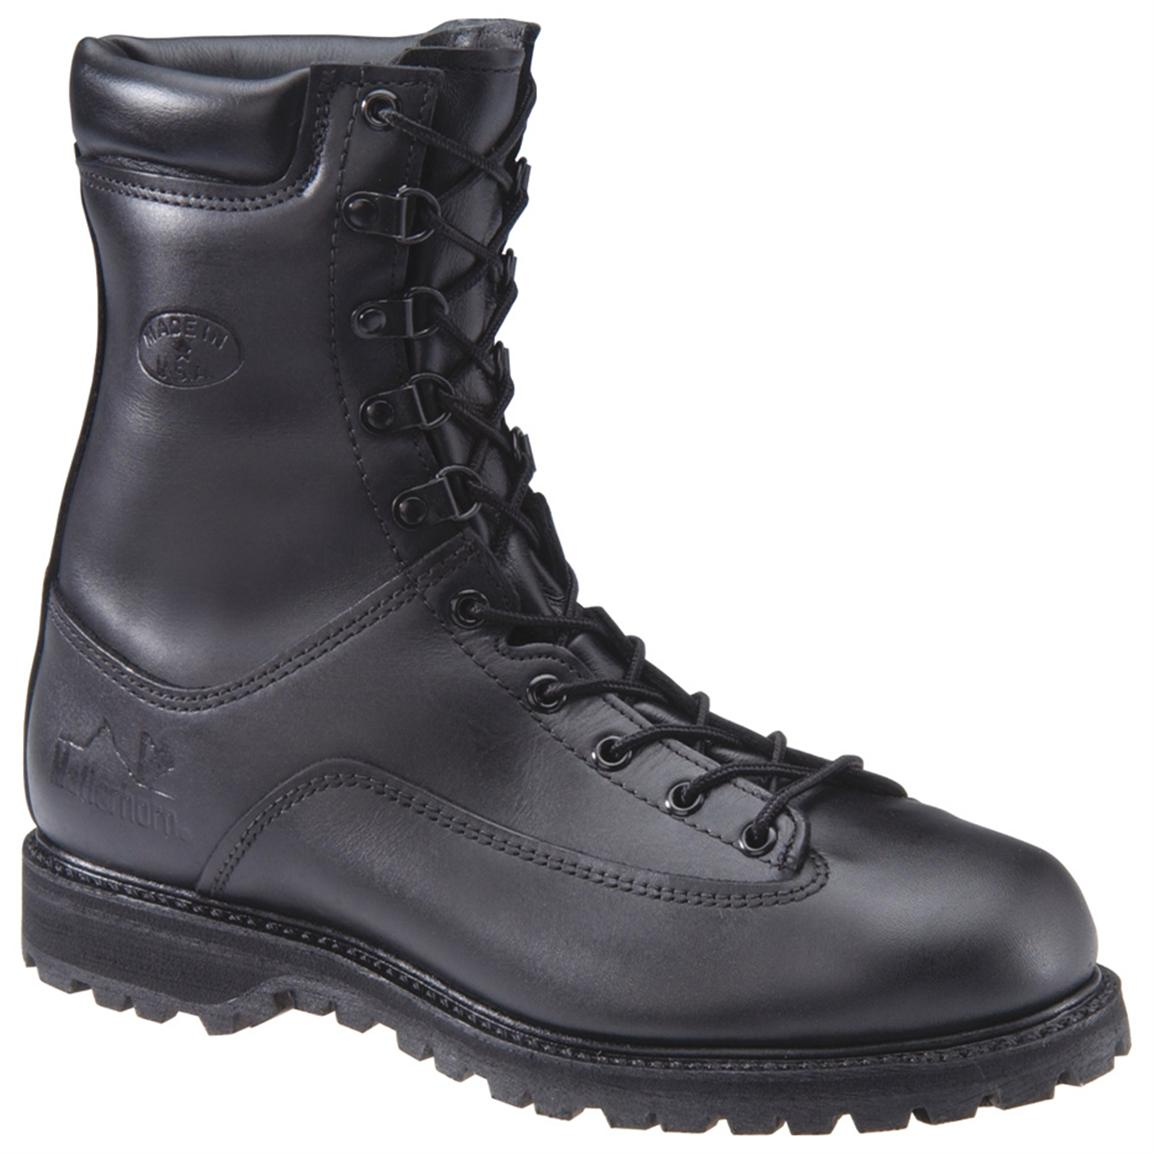 "Women's Matterhorn® 8"" Waterproof Field Boots, Black"